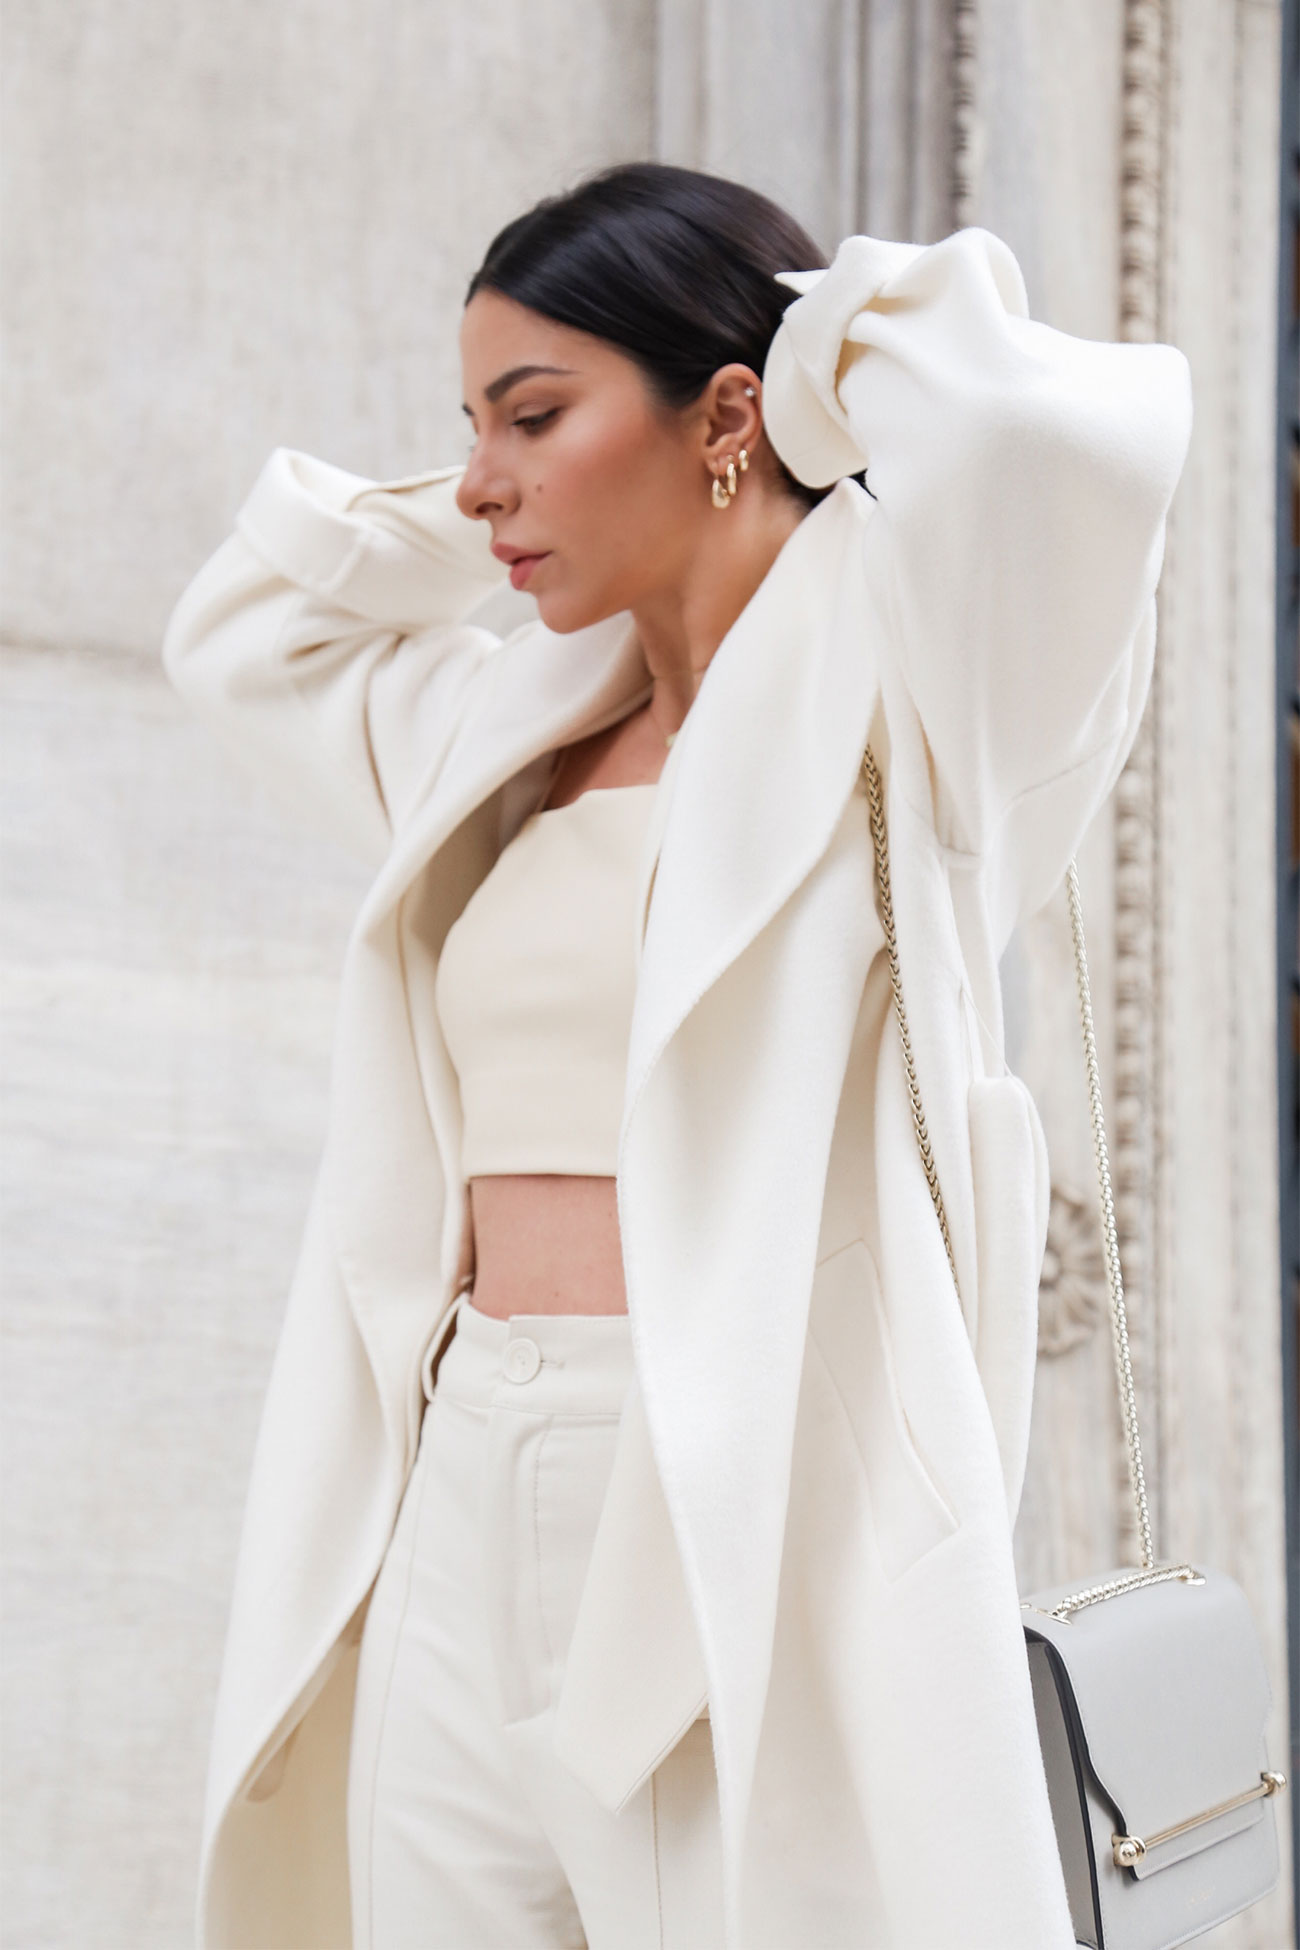 Stella Asteria wearing a total white look with soft wool coat, white pantsuit, faux leather crop top and Starthberry east west bag. How to wear a head-to-toe white outfit